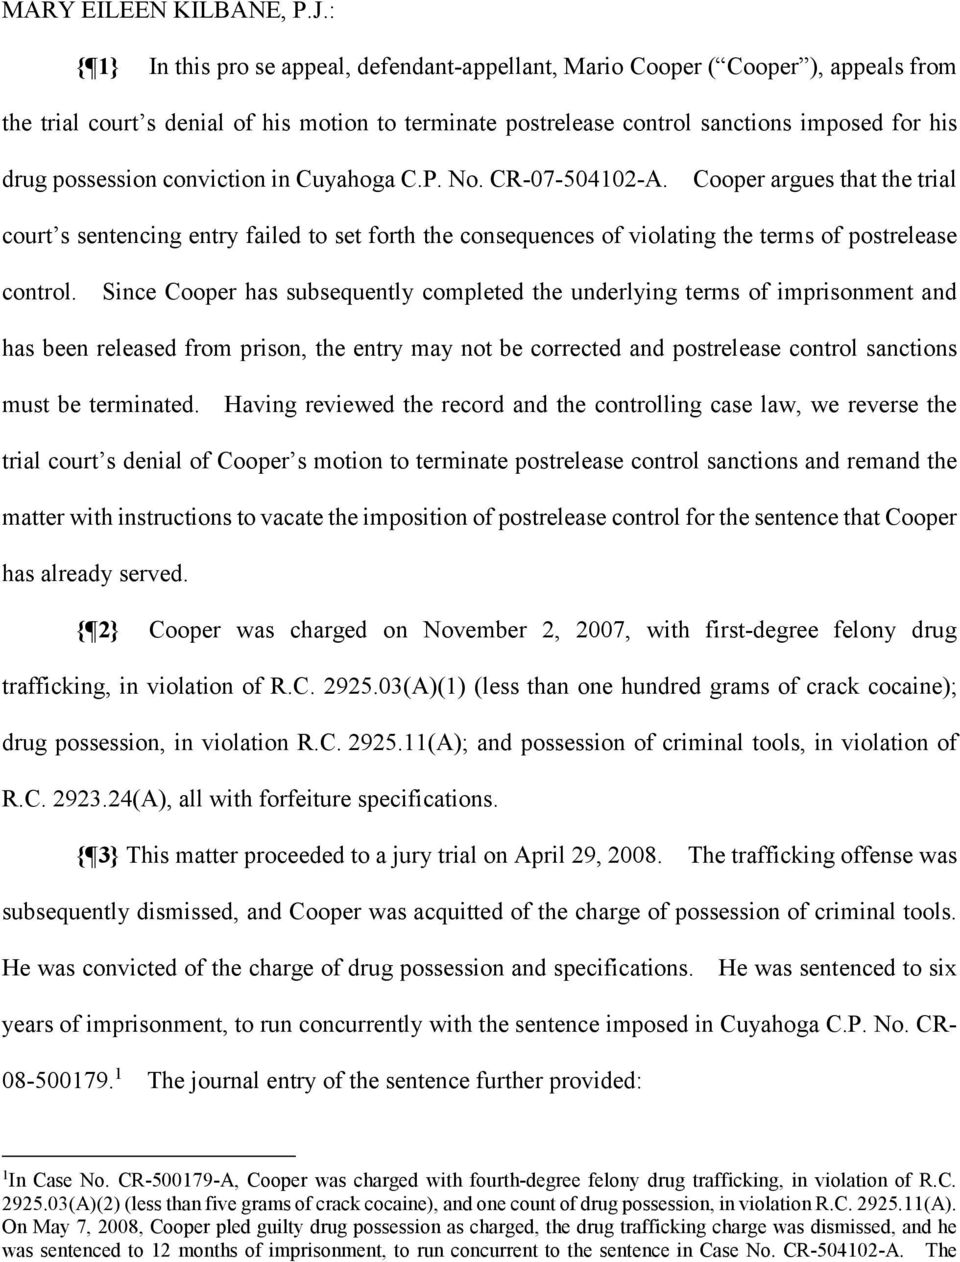 possession conviction in Cuyahoga C.P. No. CR-07-504102-A. Cooper argues that the trial court s sentencing entry failed to set forth the consequences of violating the terms of postrelease control.